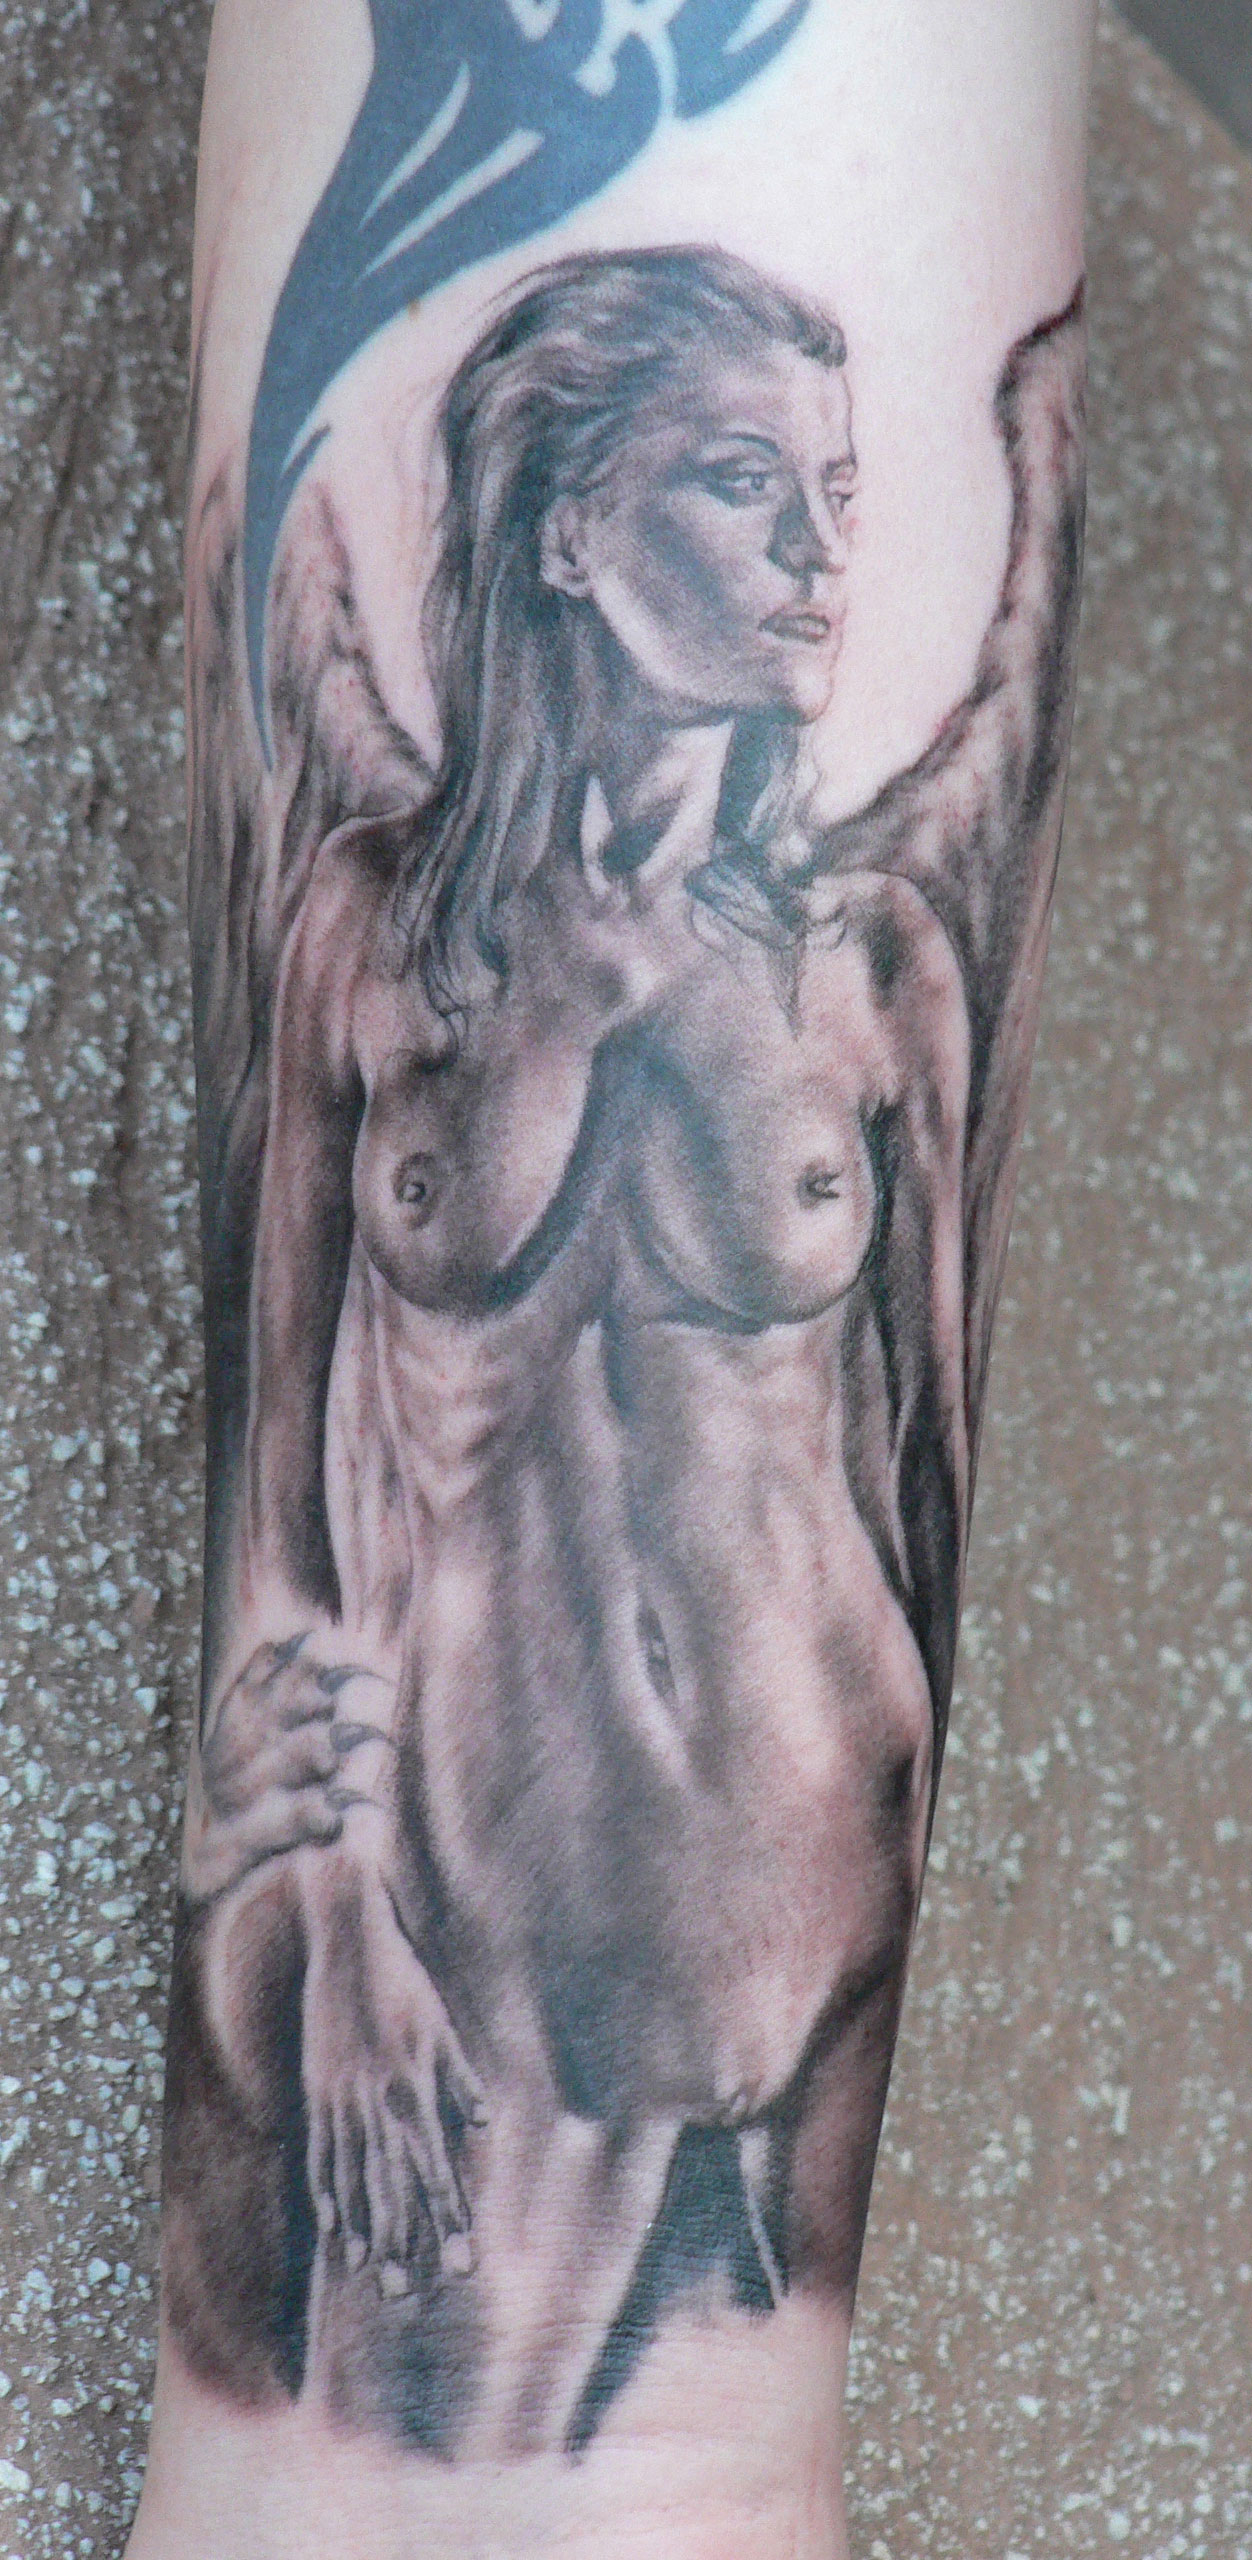 Black and Grey Winged Nude Angel Tattoo, (healed) Stockholm Ink Bash, Sweden